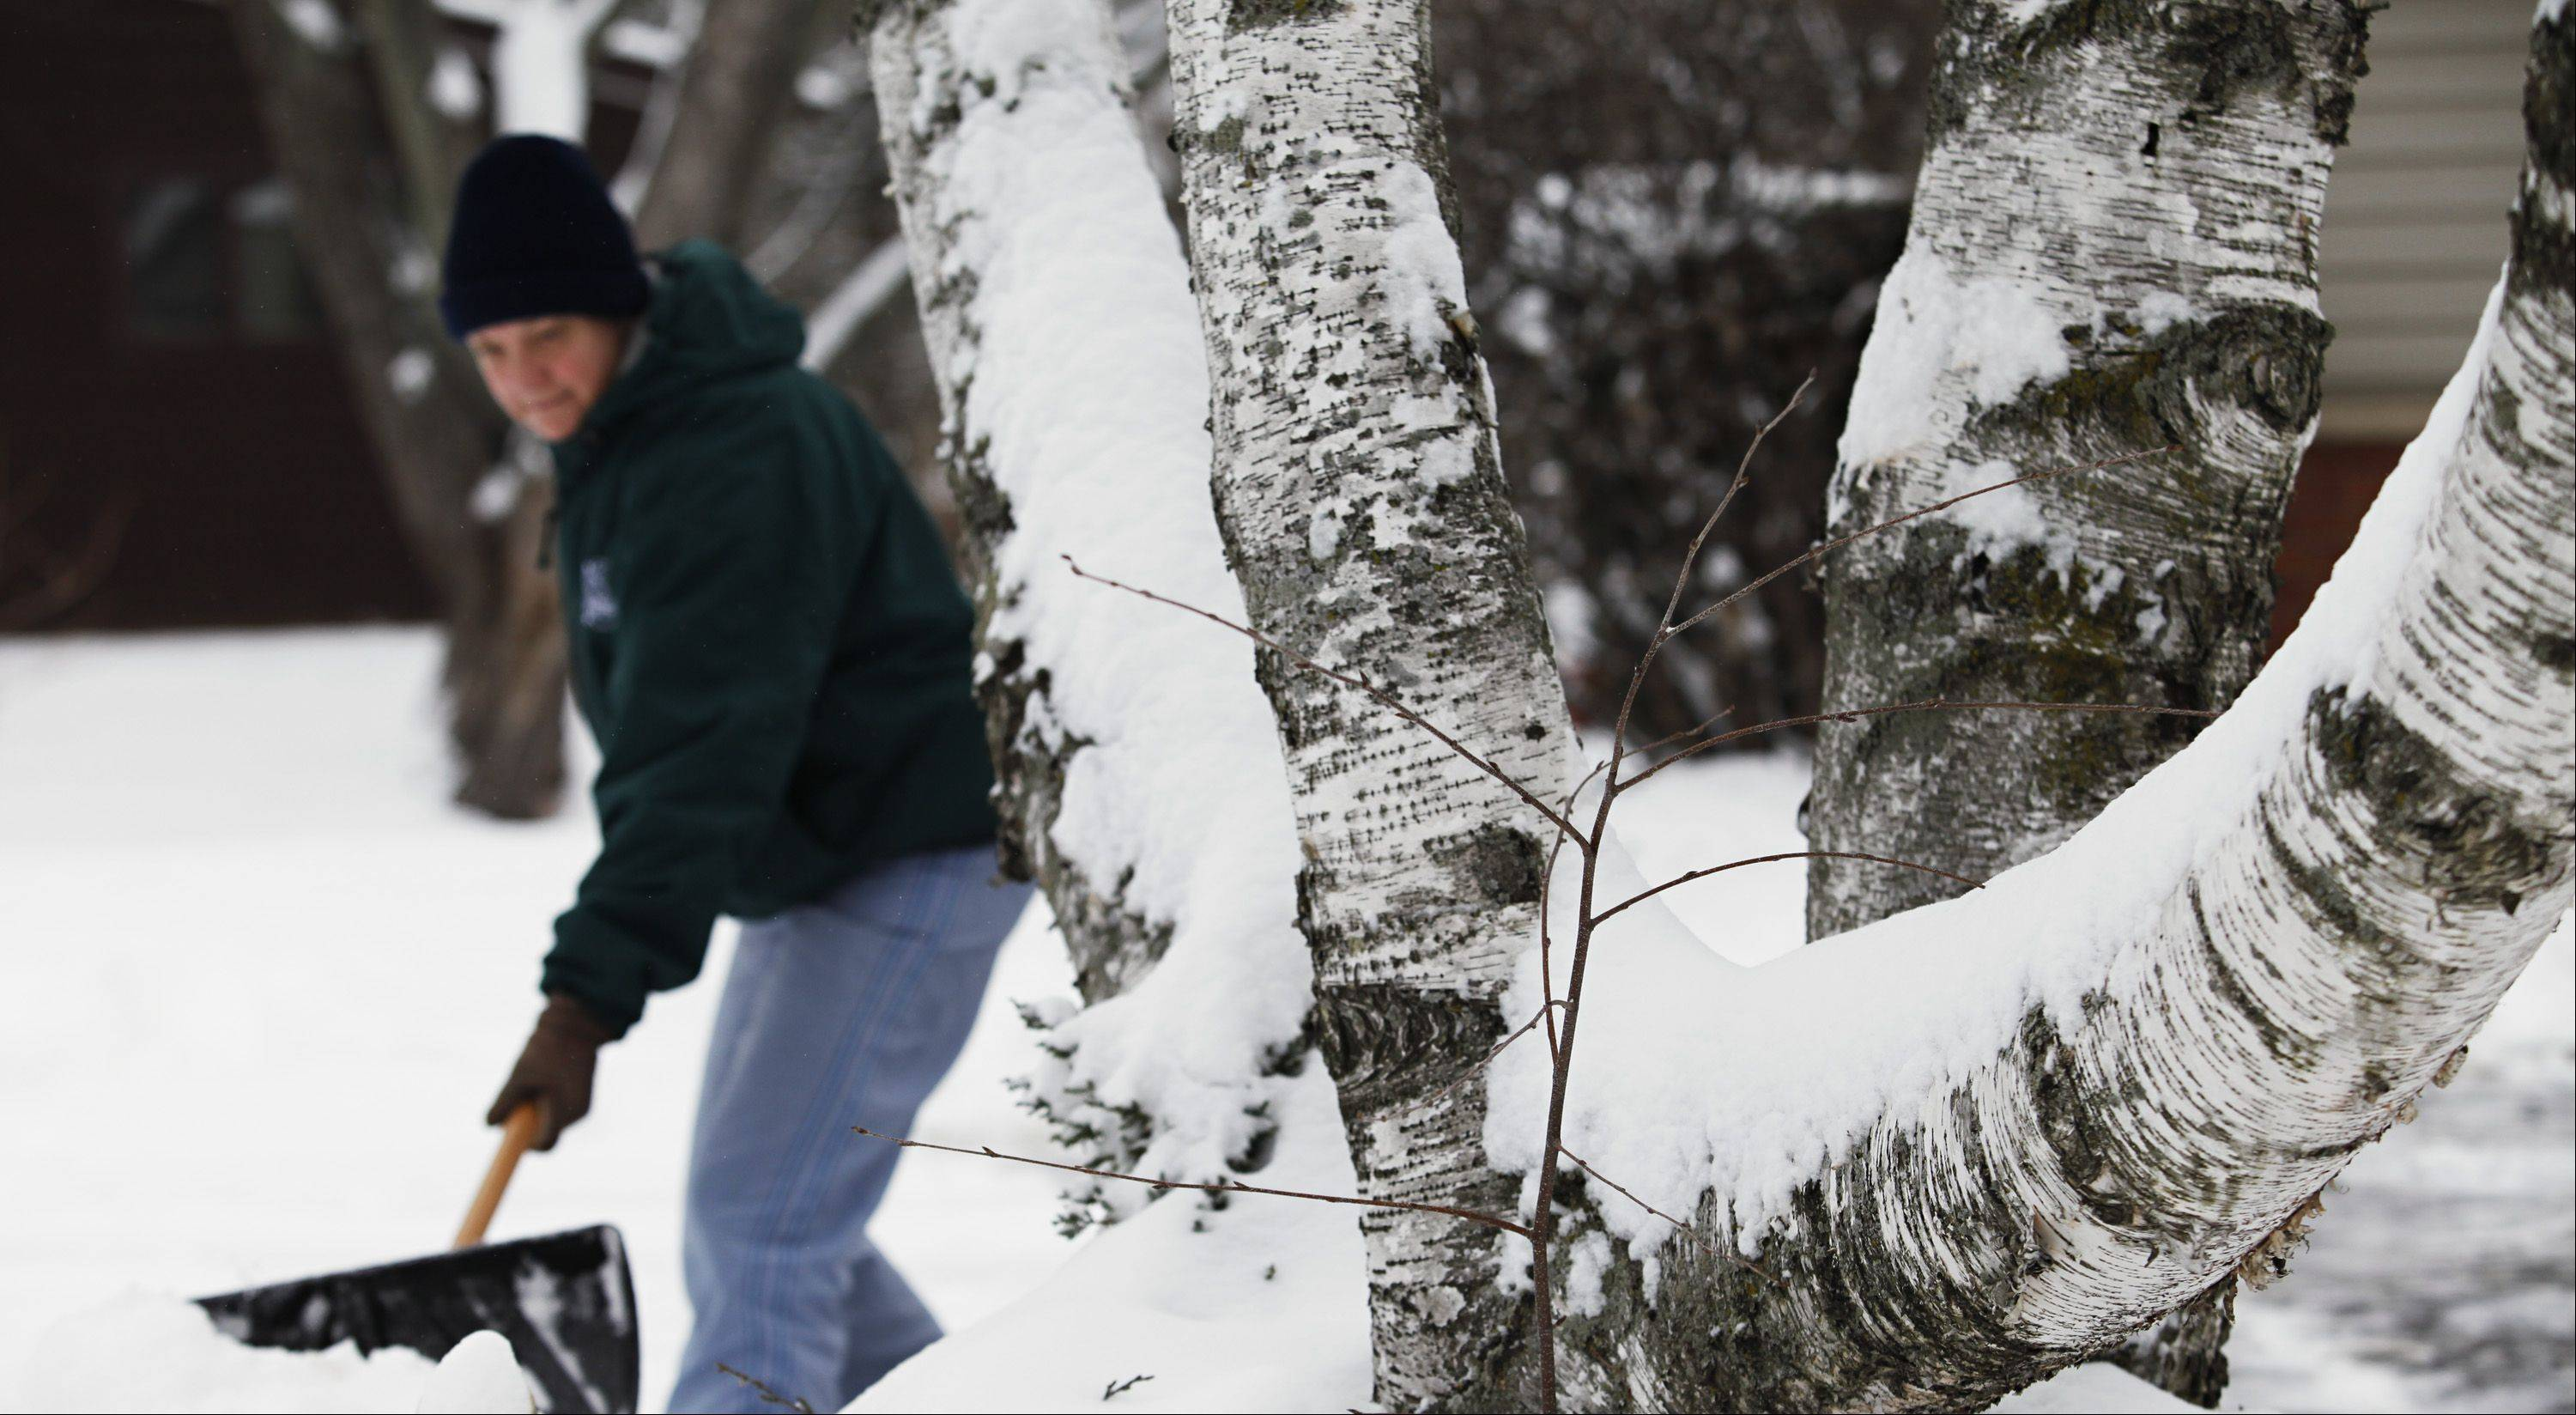 Eva Tipps, of Sleepy Hollow, shovels her driveway Monday morning near a birch tree covered in new snow.